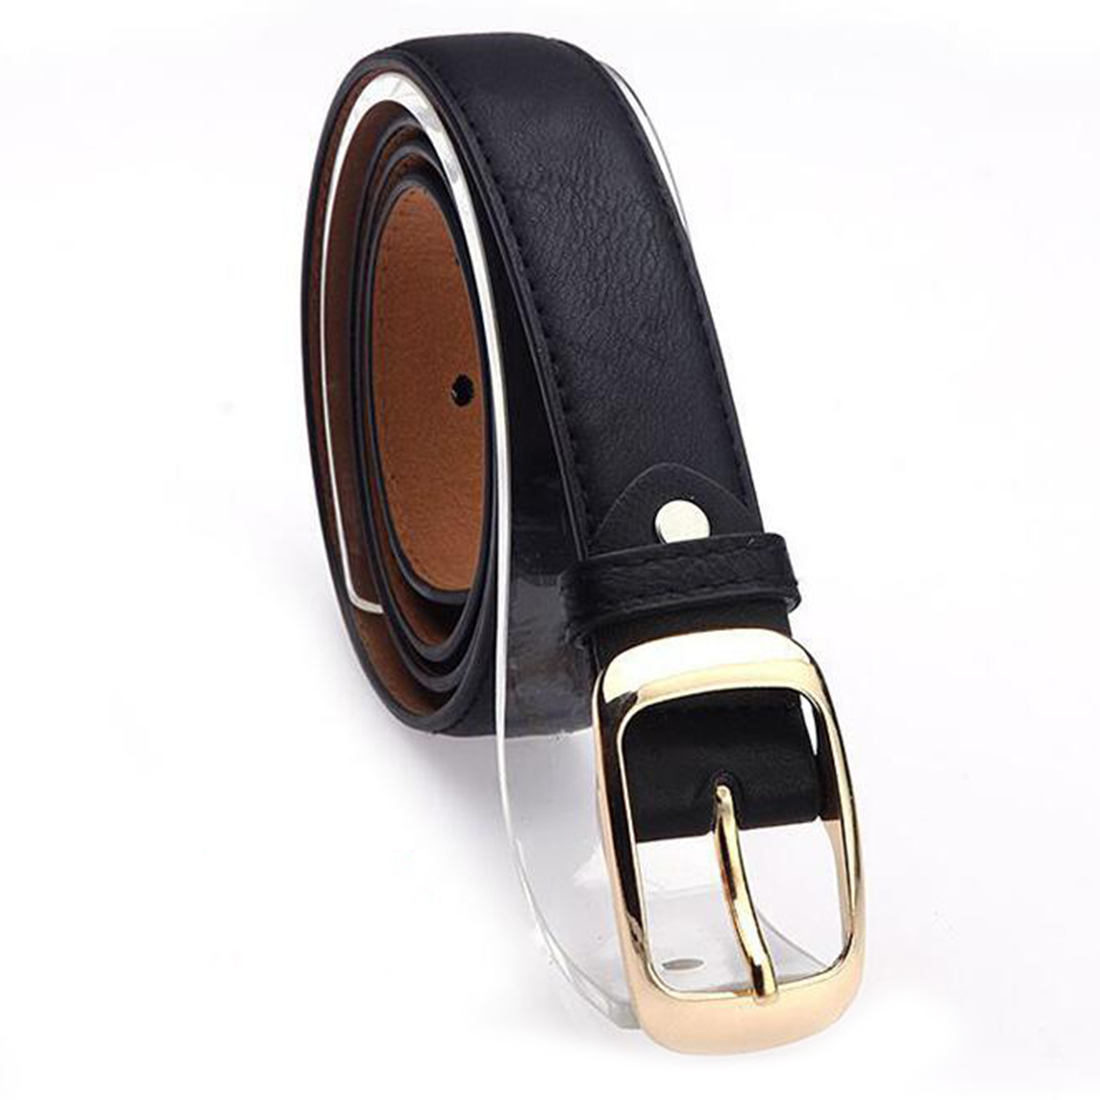 Fashion 2017 Women Belt Brand Designer Hot Ladies Faux Imitation Leather Metal Buckle Straps Girls Fashion Accessories 7 Colors in Women 39 s Belts from Apparel Accessories